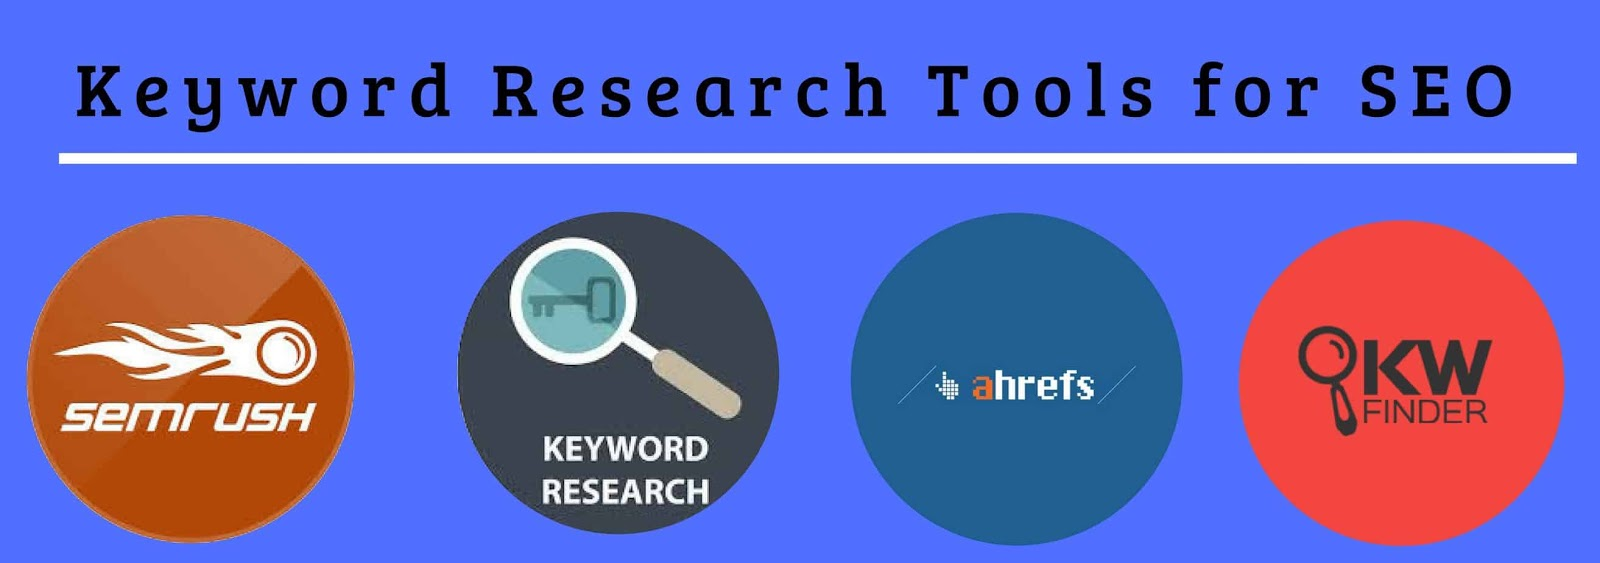 Best Keyword Research Tools 2019